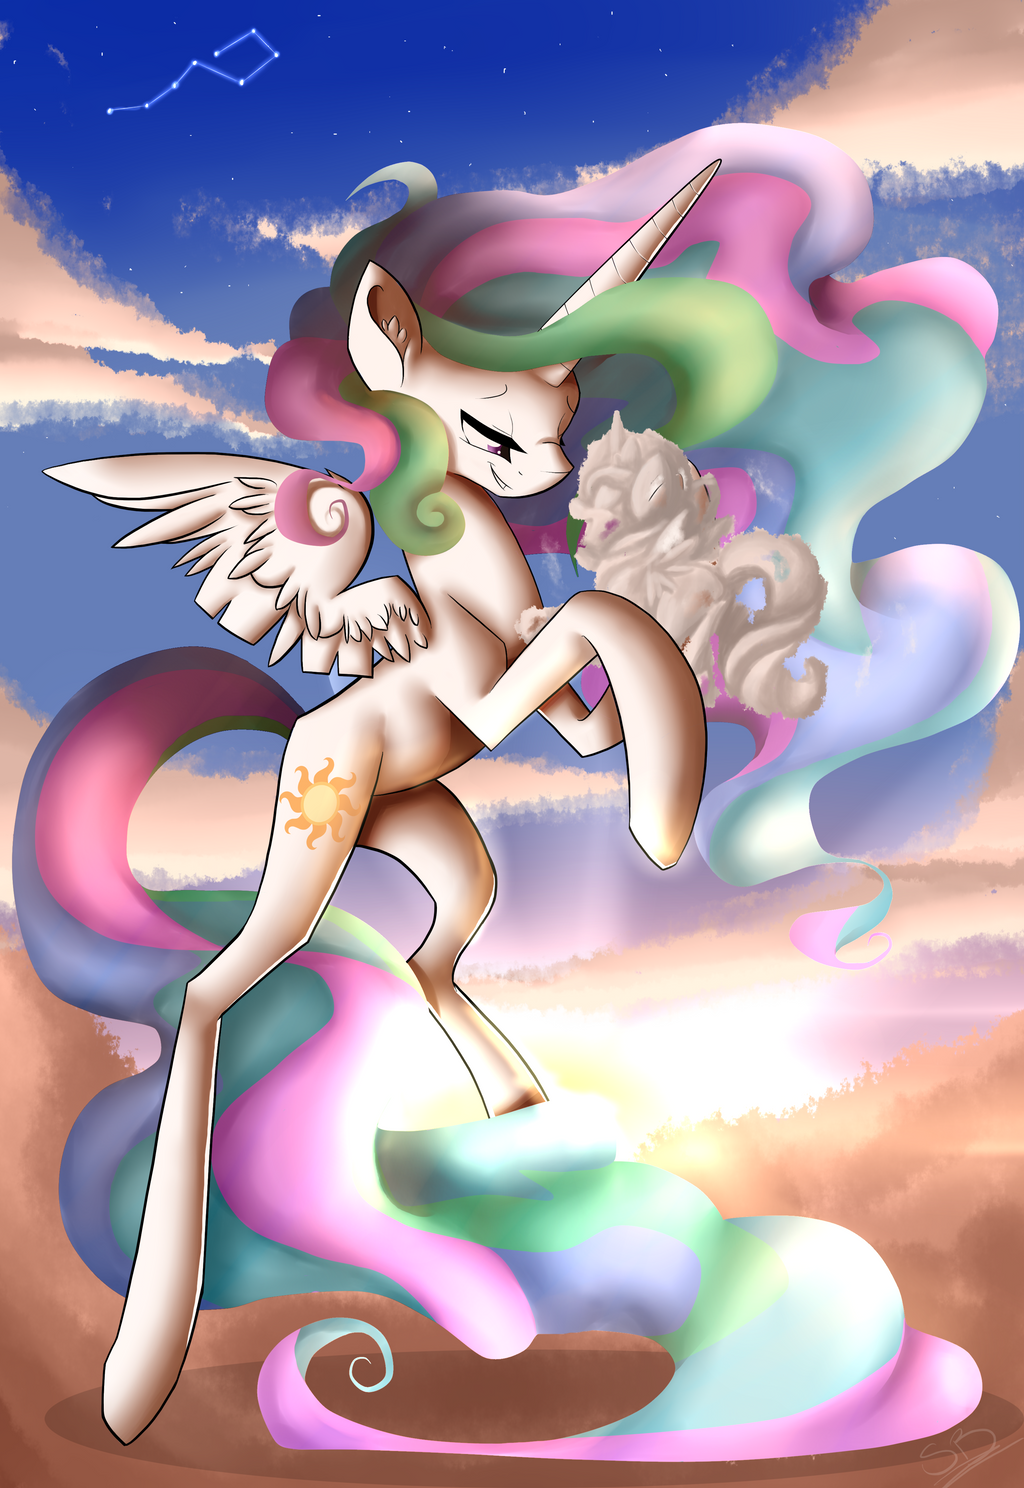 Cloud Chaser by SquigyButt